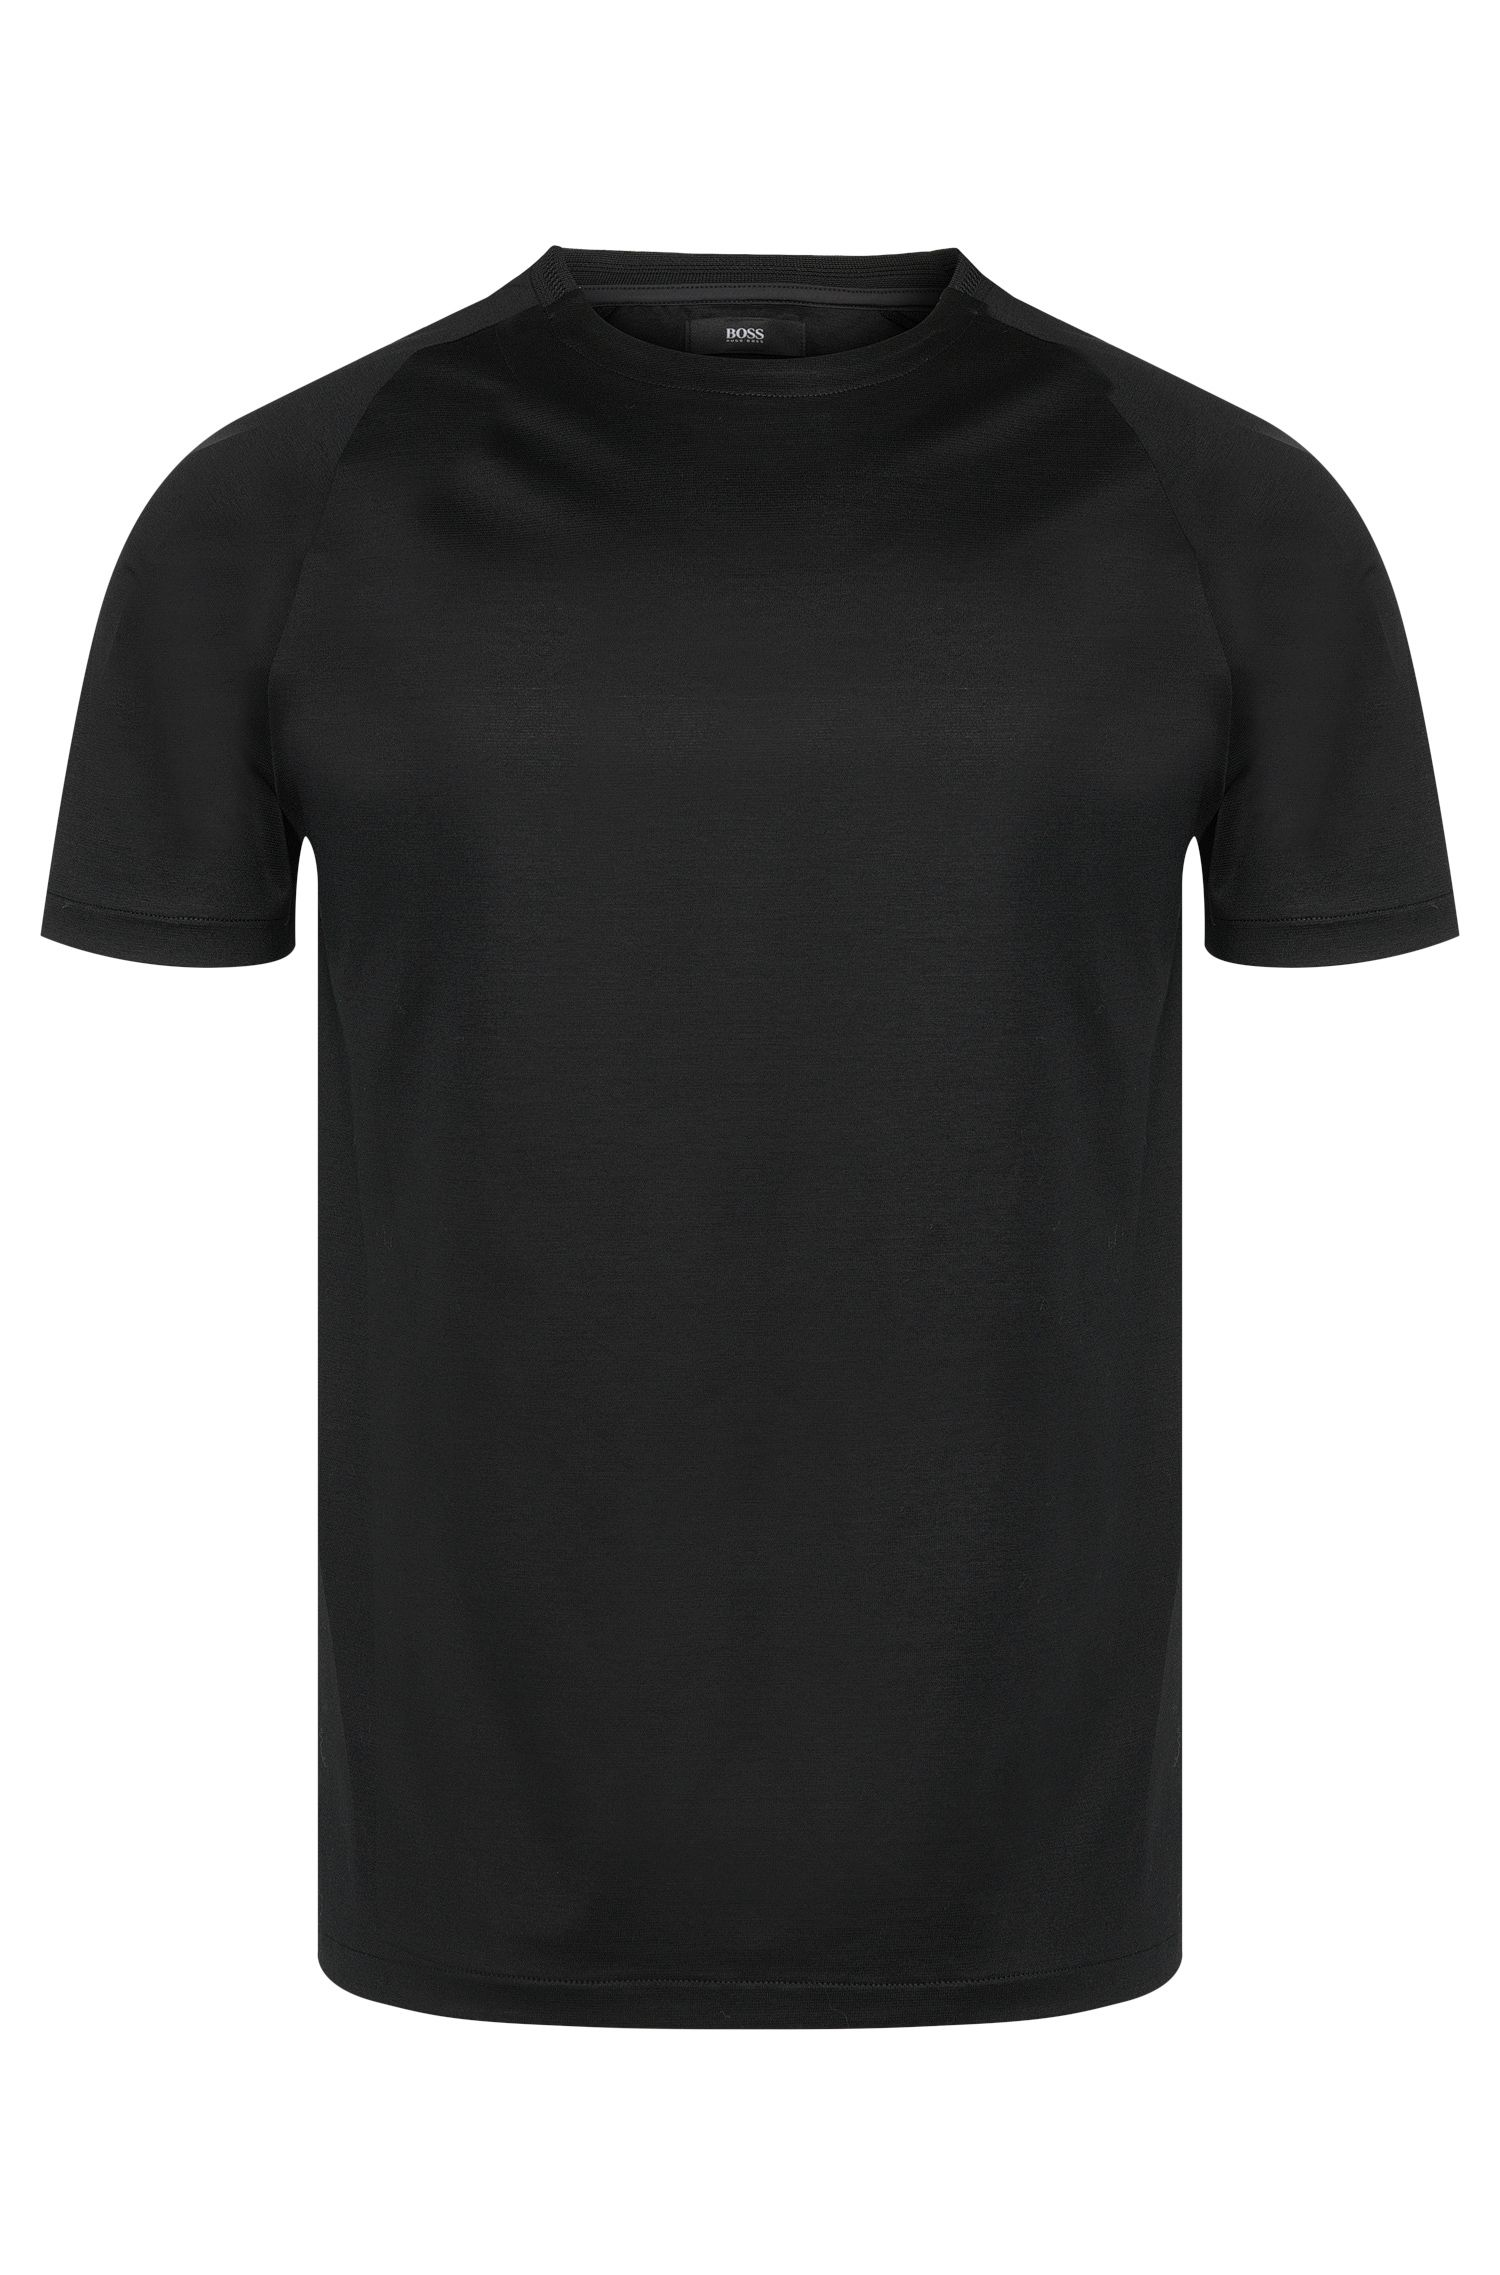 T-shirt Slim Fit en coton extensible mercerisé : « Tessler 22 » issu de la collection Mercedes-Benz